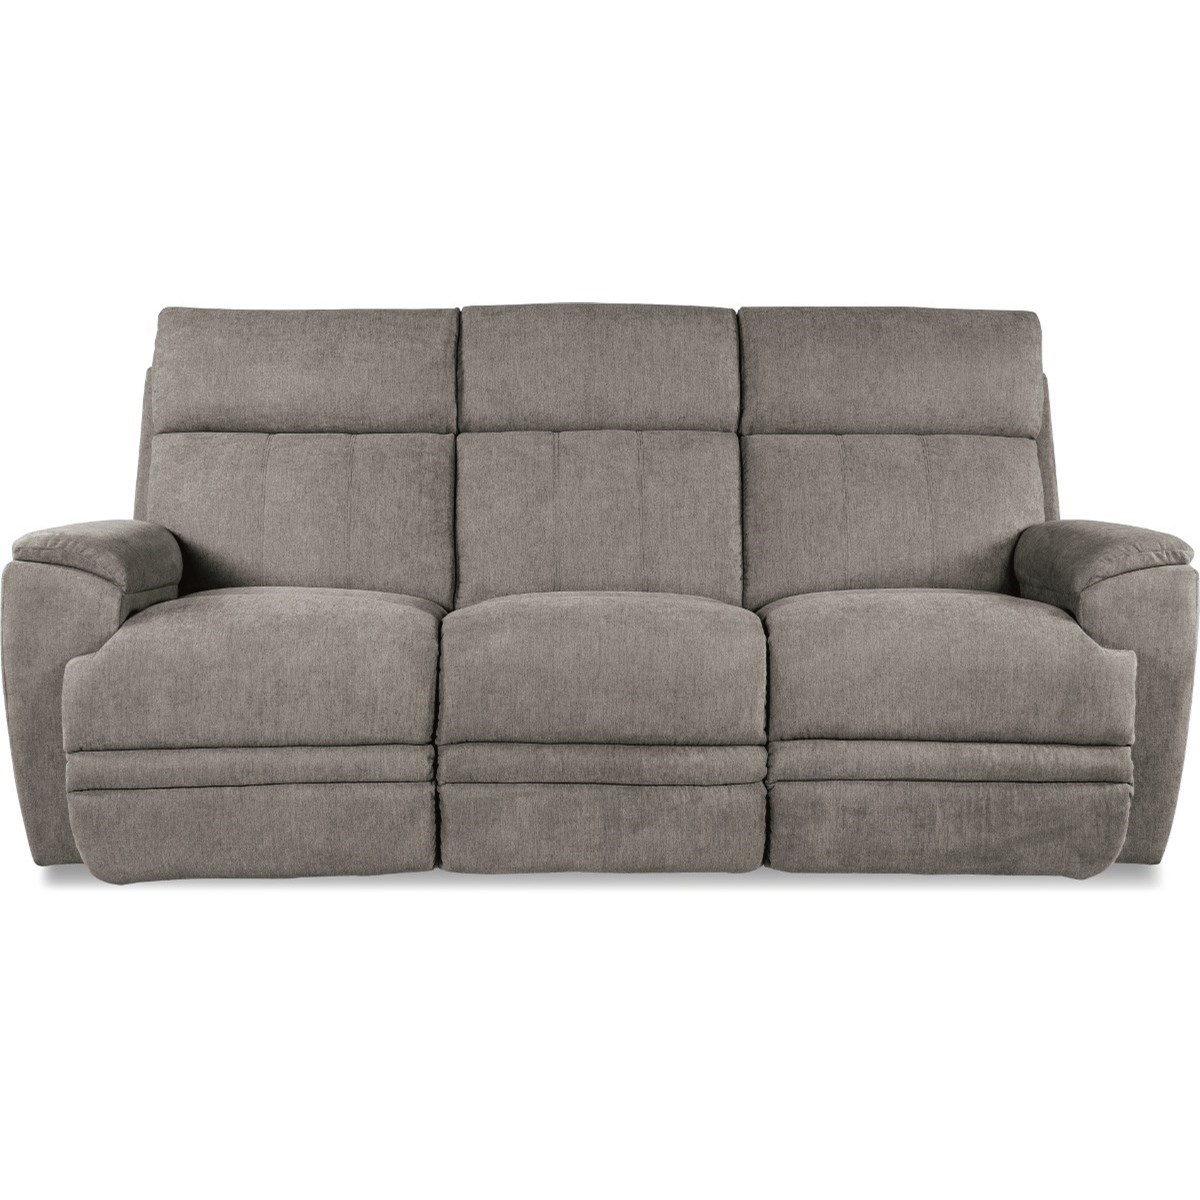 Casual Power Reclining Sofa with USB Charging Ports and Power Headrest / Lumbar